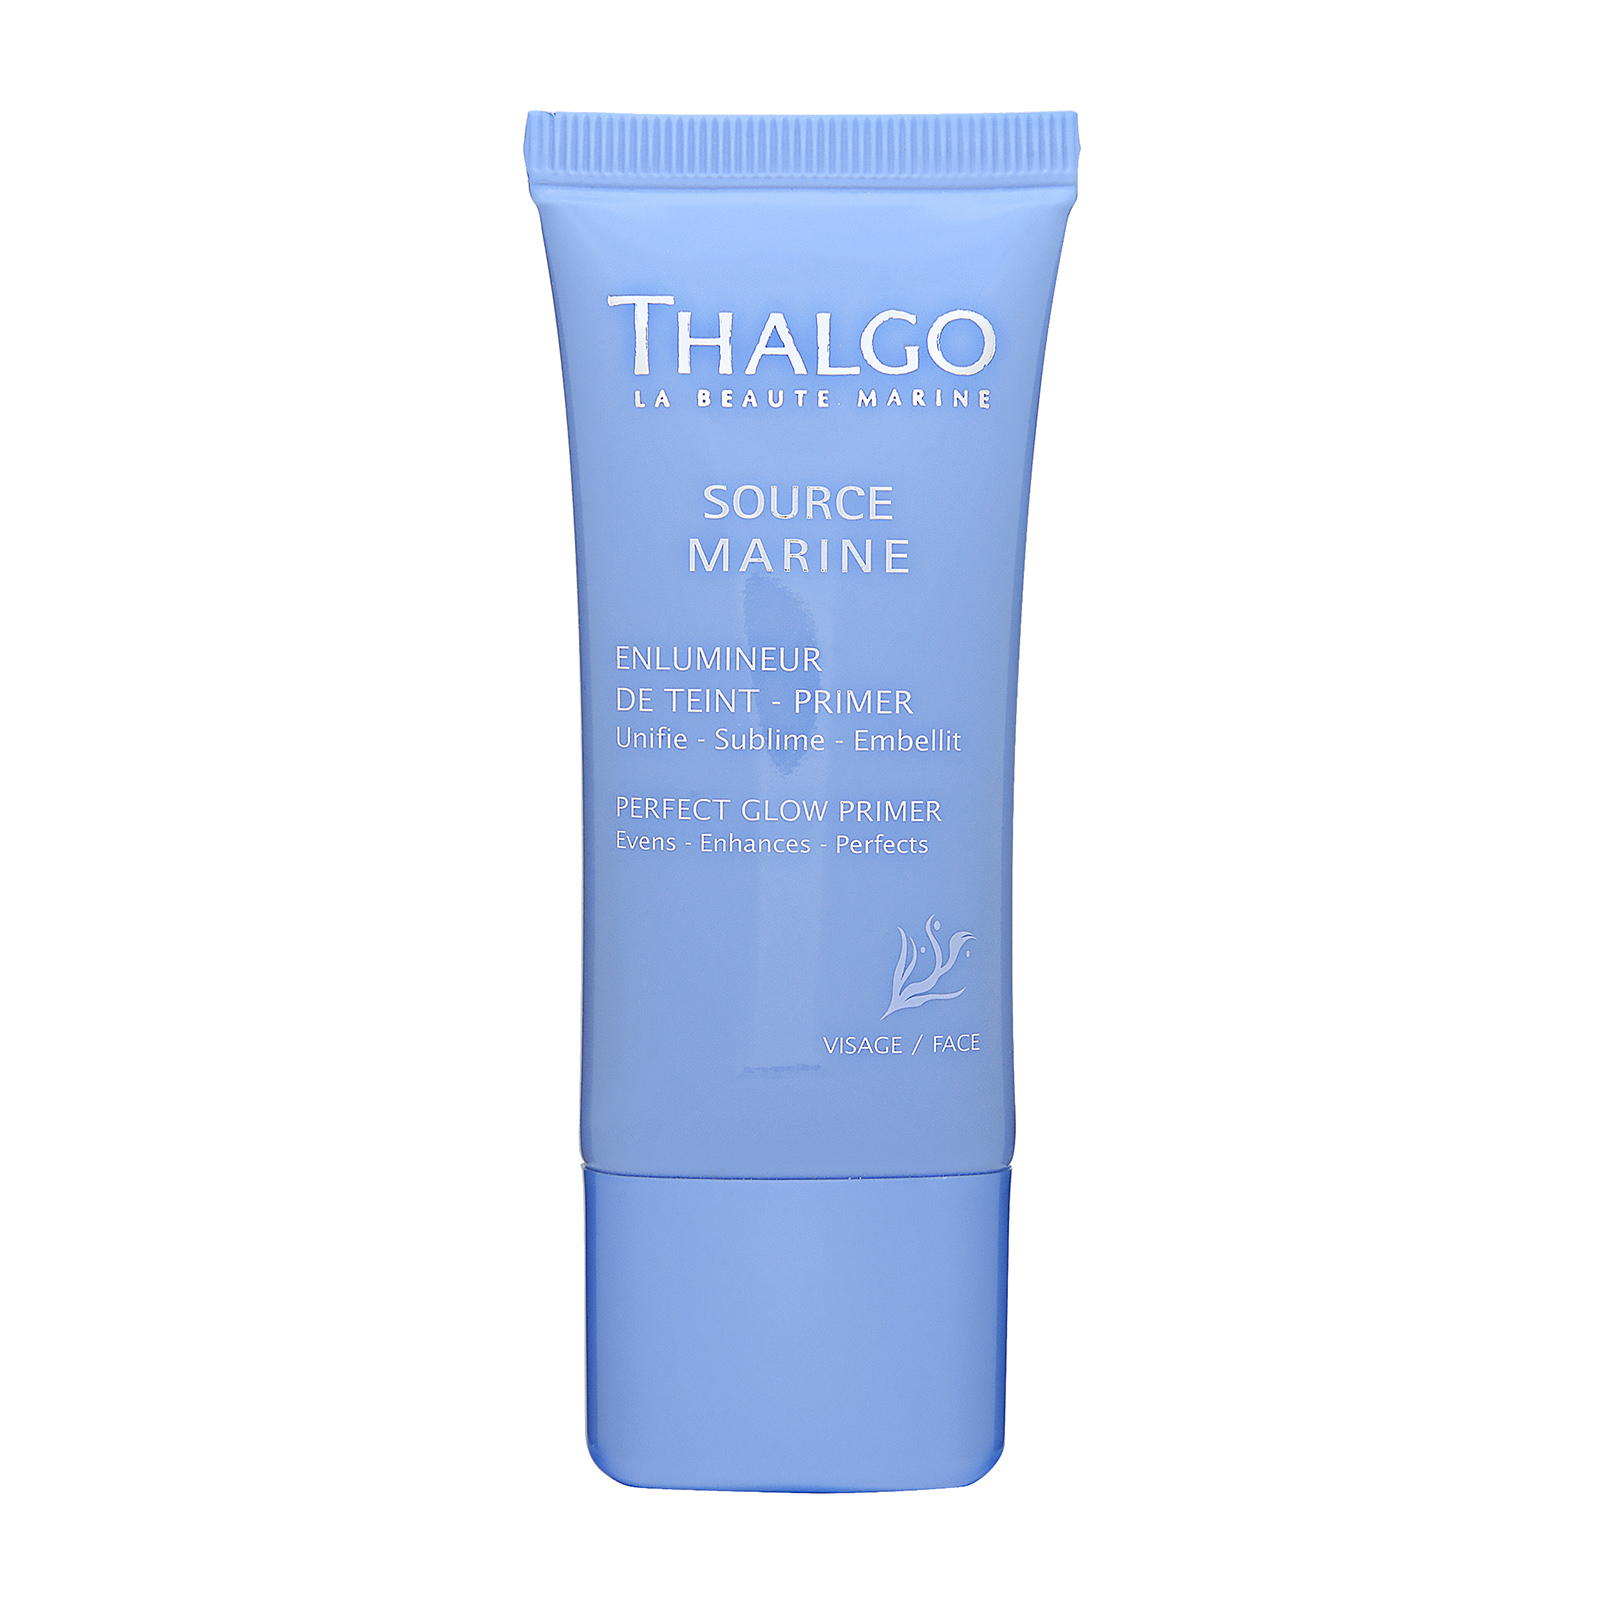 THALGO Source Marine Perfect Glow Primer 1.01oz, 30ml